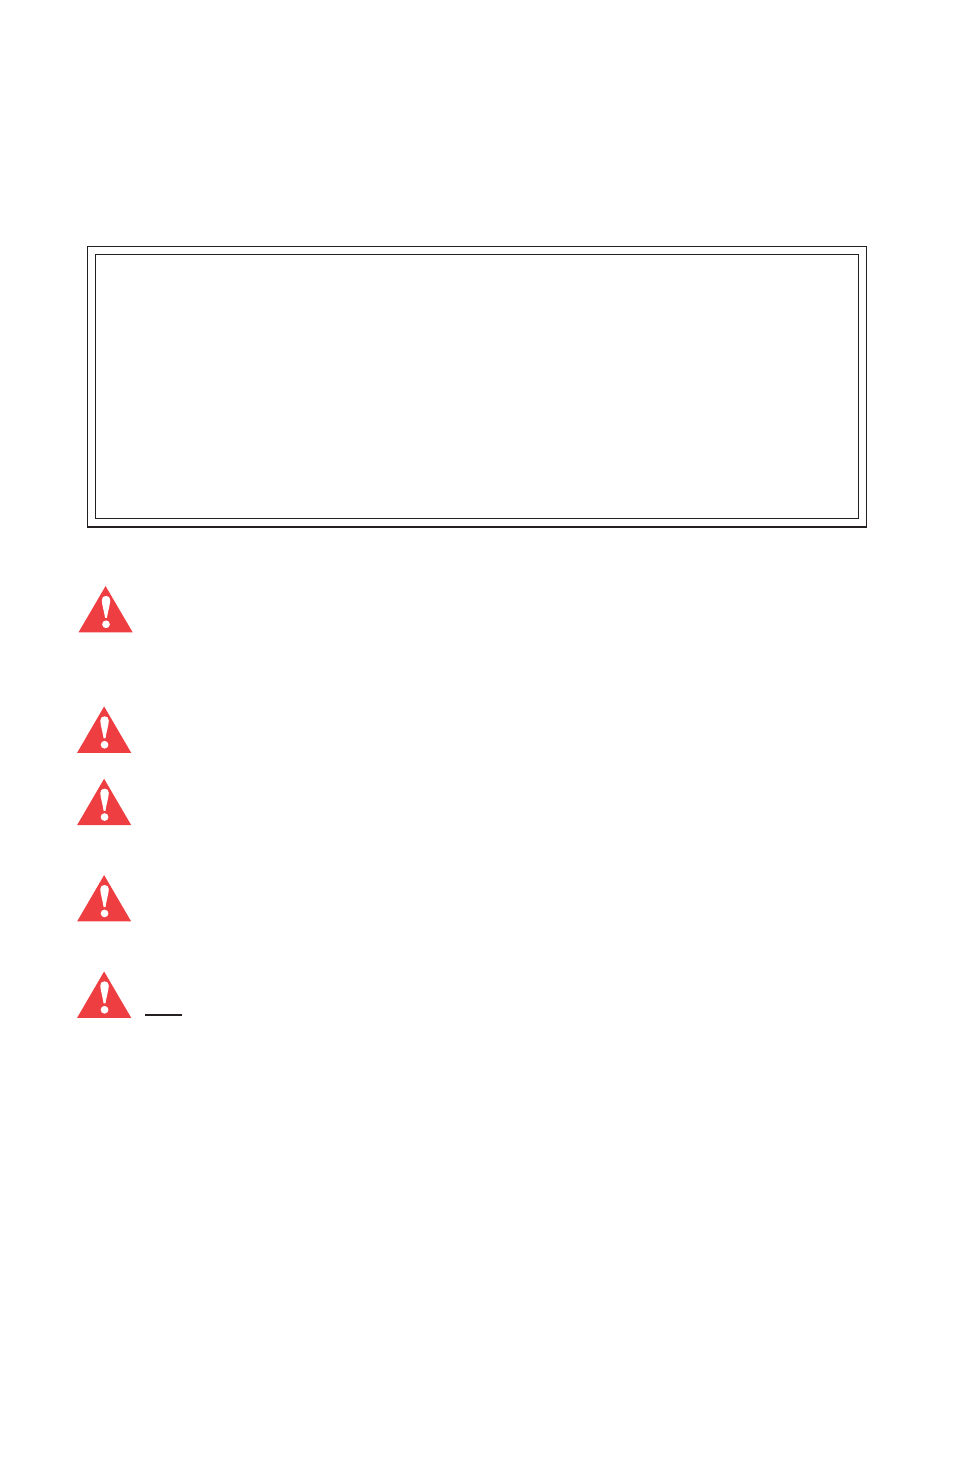 mossberg 59 line launcher user manual 8 pages also for 50 line rh manualsdir com Samsung Phone Manuals Samsung Phone Manuals